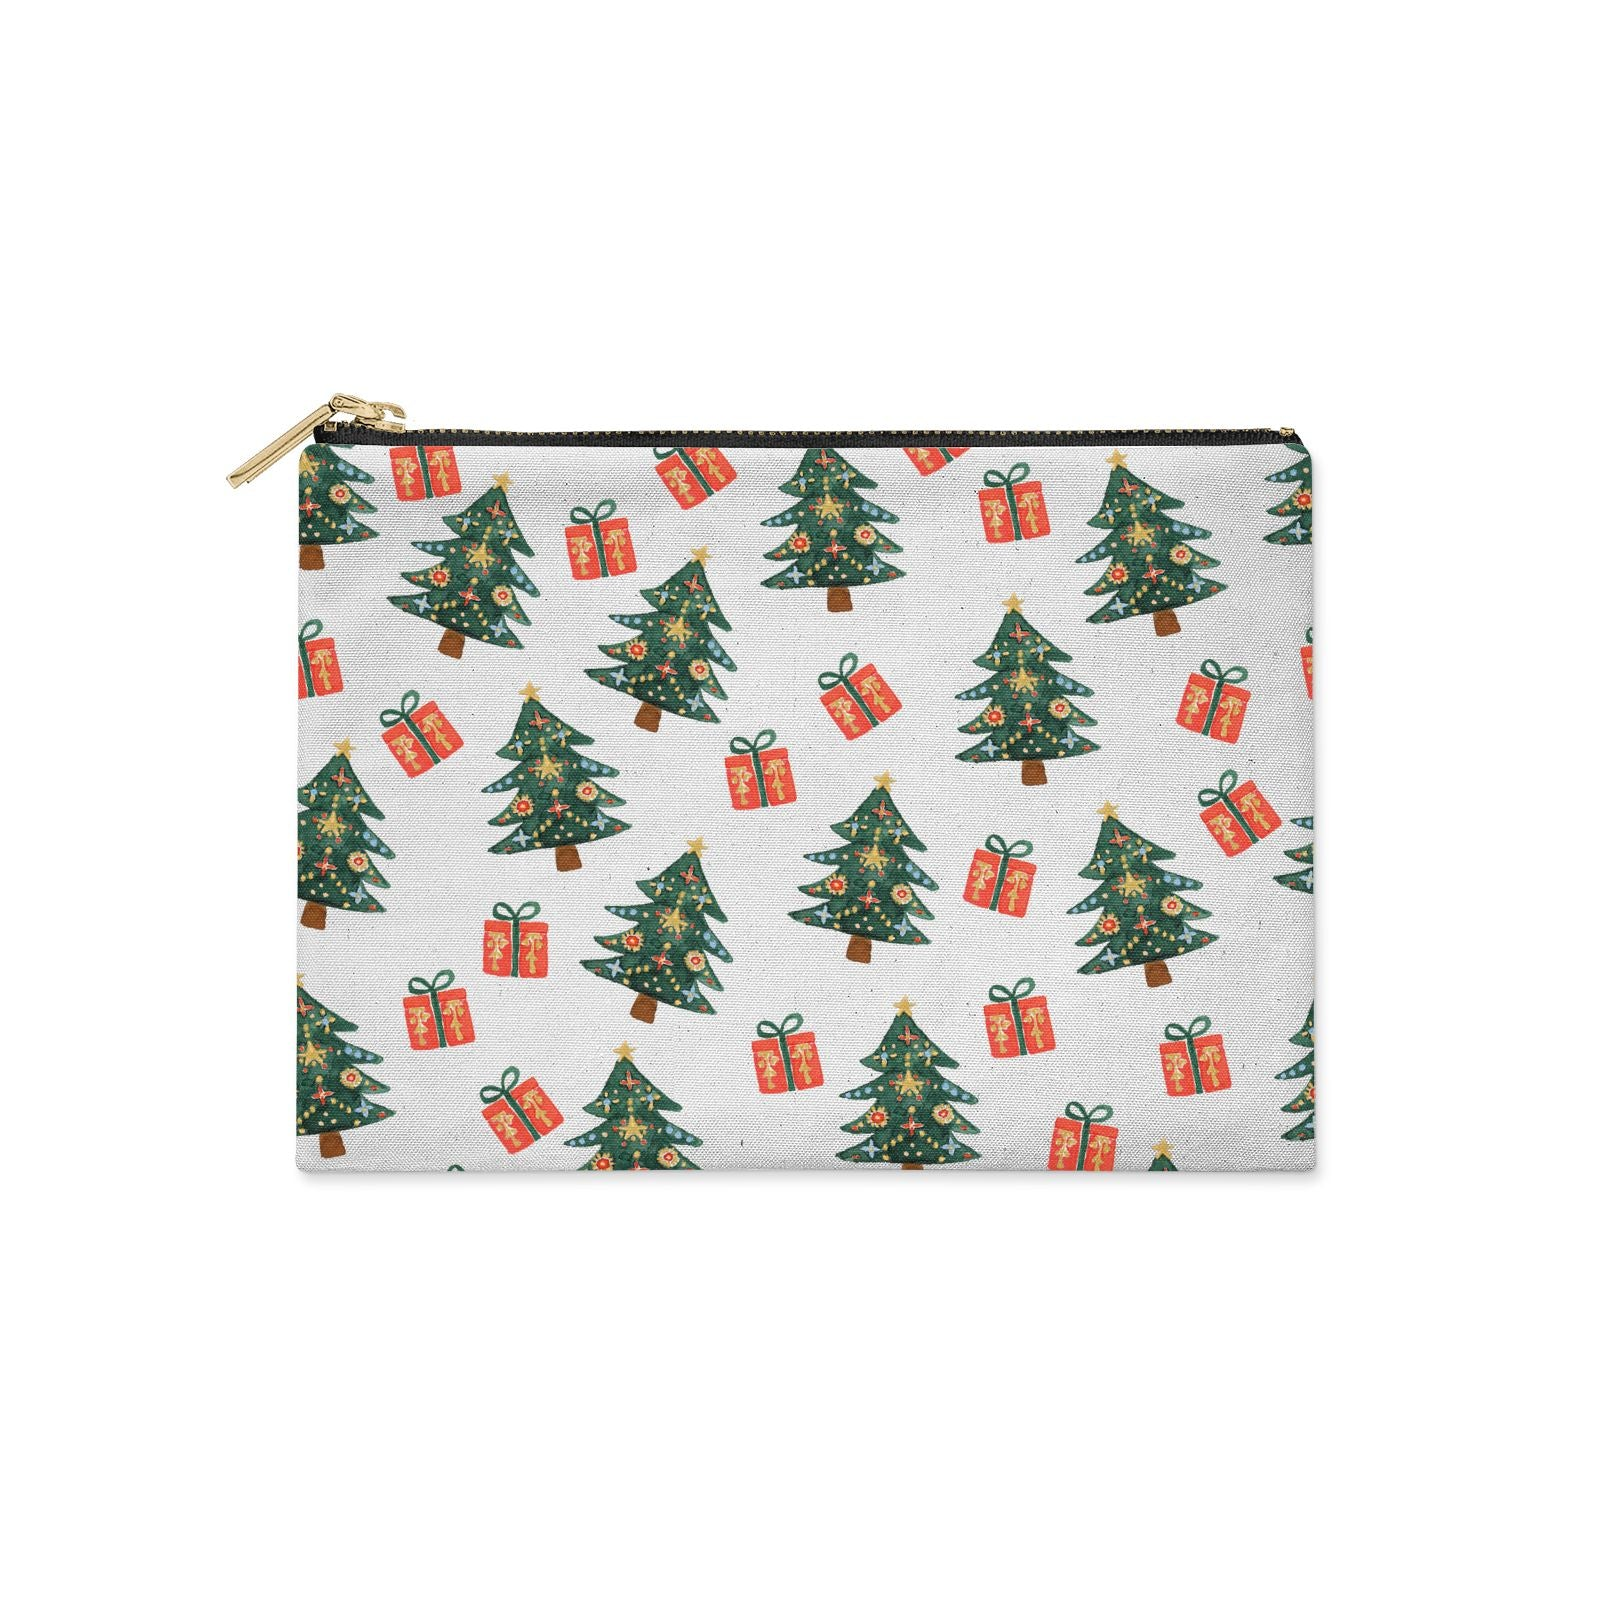 Christmas tree and presents Clutch Bag Zipper Pouch